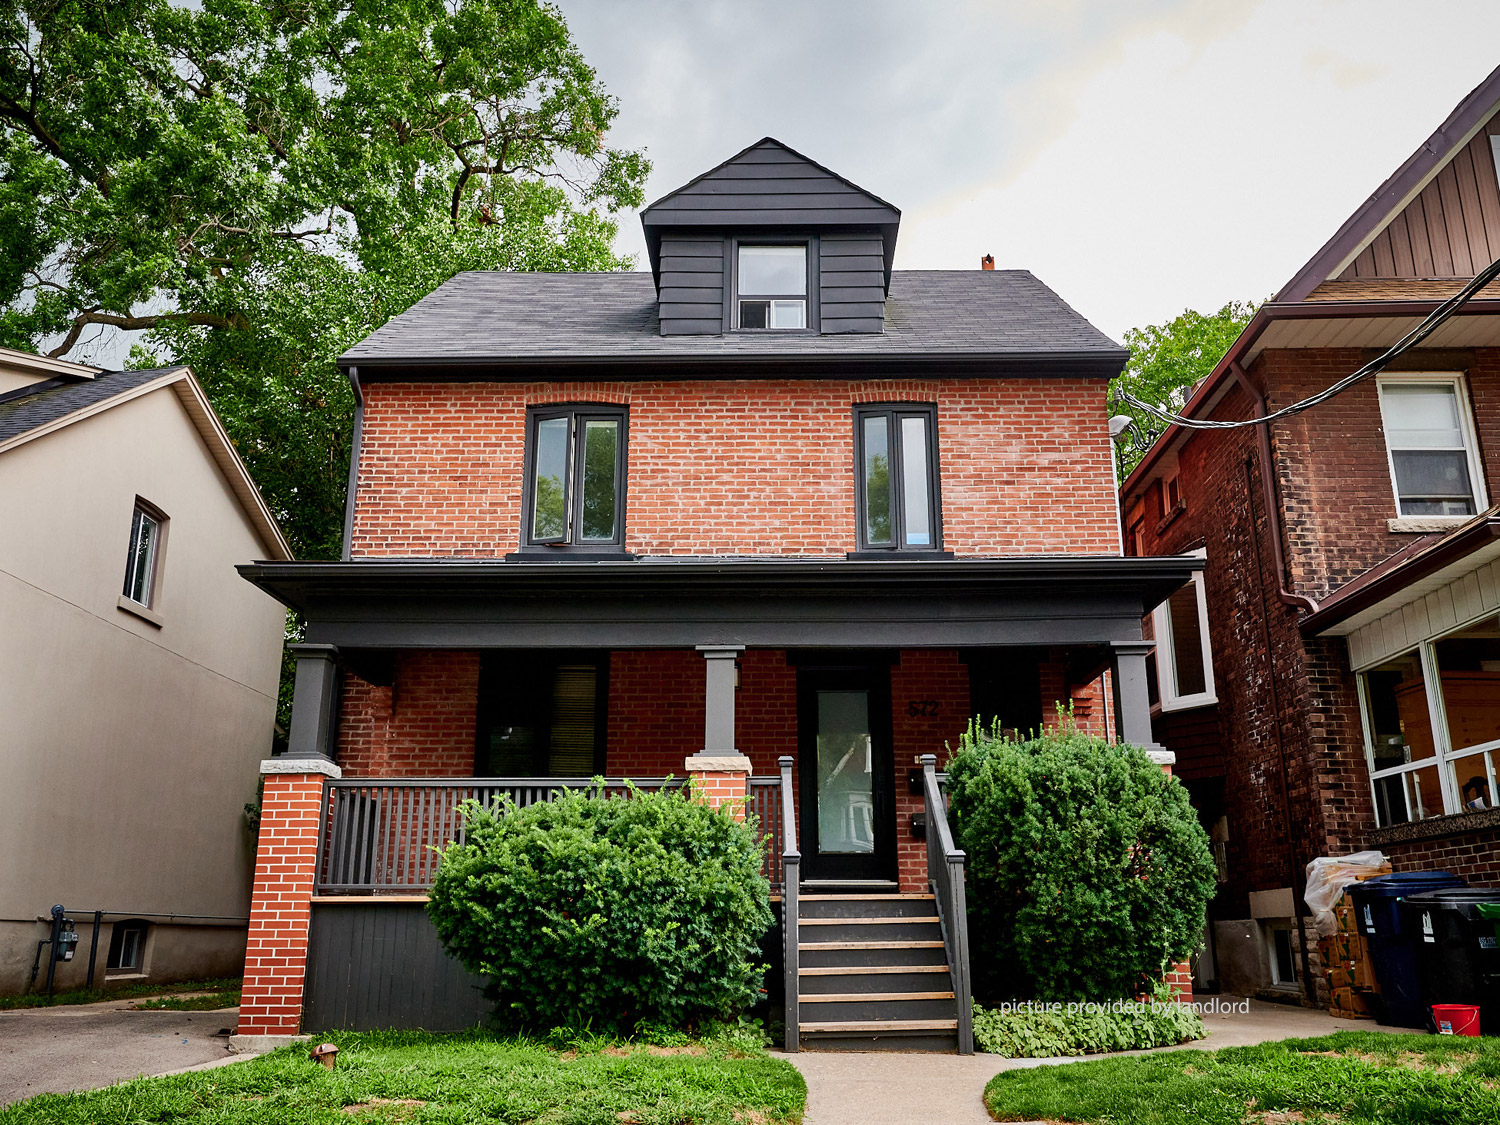 For rent: Runnymede-Annette Toronto, 2 bdrm Viewit |51007